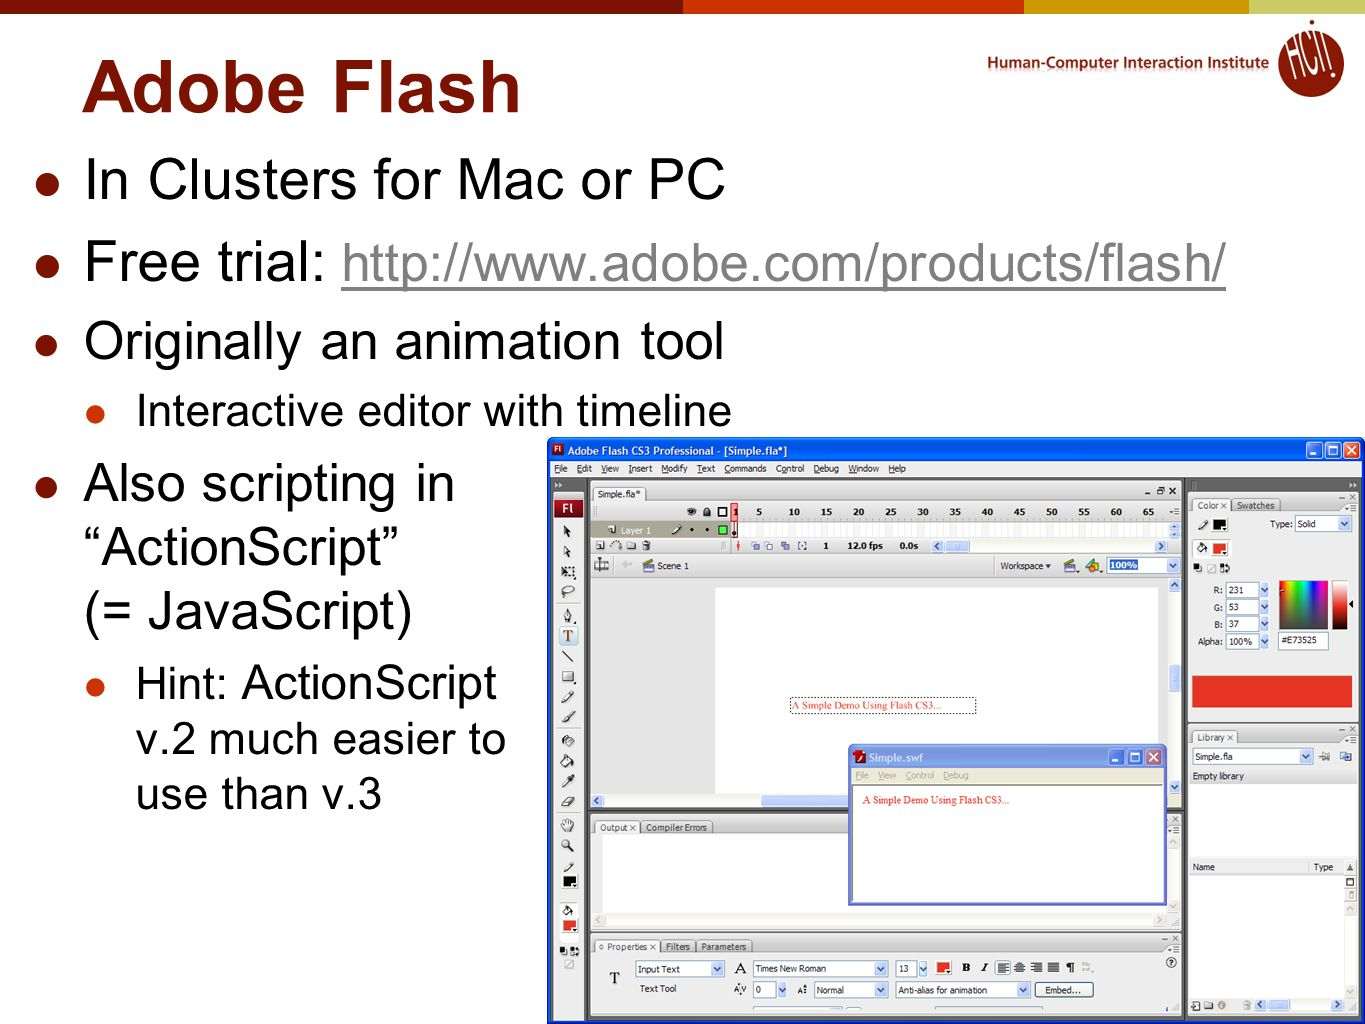 Adobe Flash In Clusters for Mac or PC Free trial: http://www.adobe.com/products/flash/ http://www.adobe.com/products/flash/ Originally an animation tool Interactive editor with timeline Also scripting in ActionScript (= JavaScript) Hint: ActionScript v.2 much easier to use than v.3